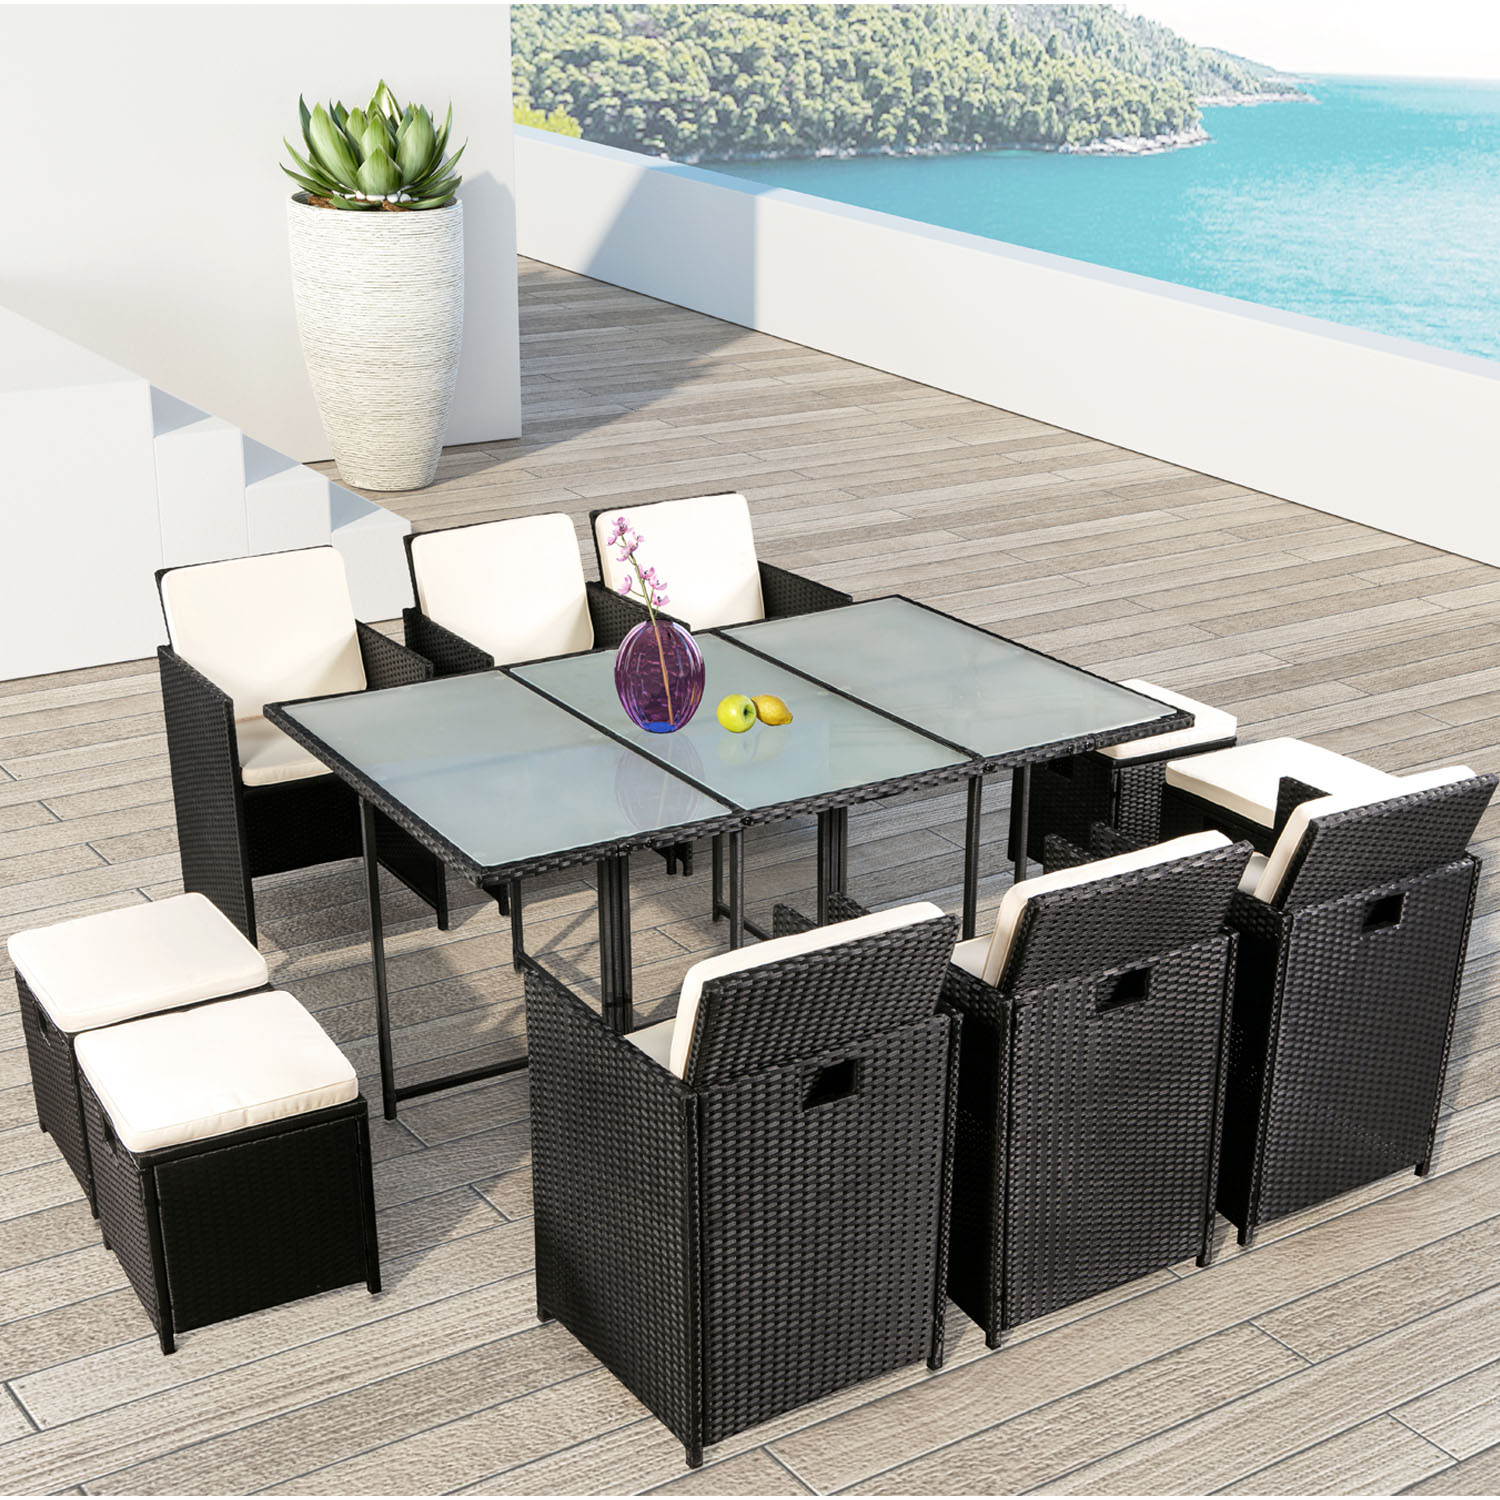 polyrattan essgruppe pico xl f r 6 personen 11 teilig. Black Bedroom Furniture Sets. Home Design Ideas